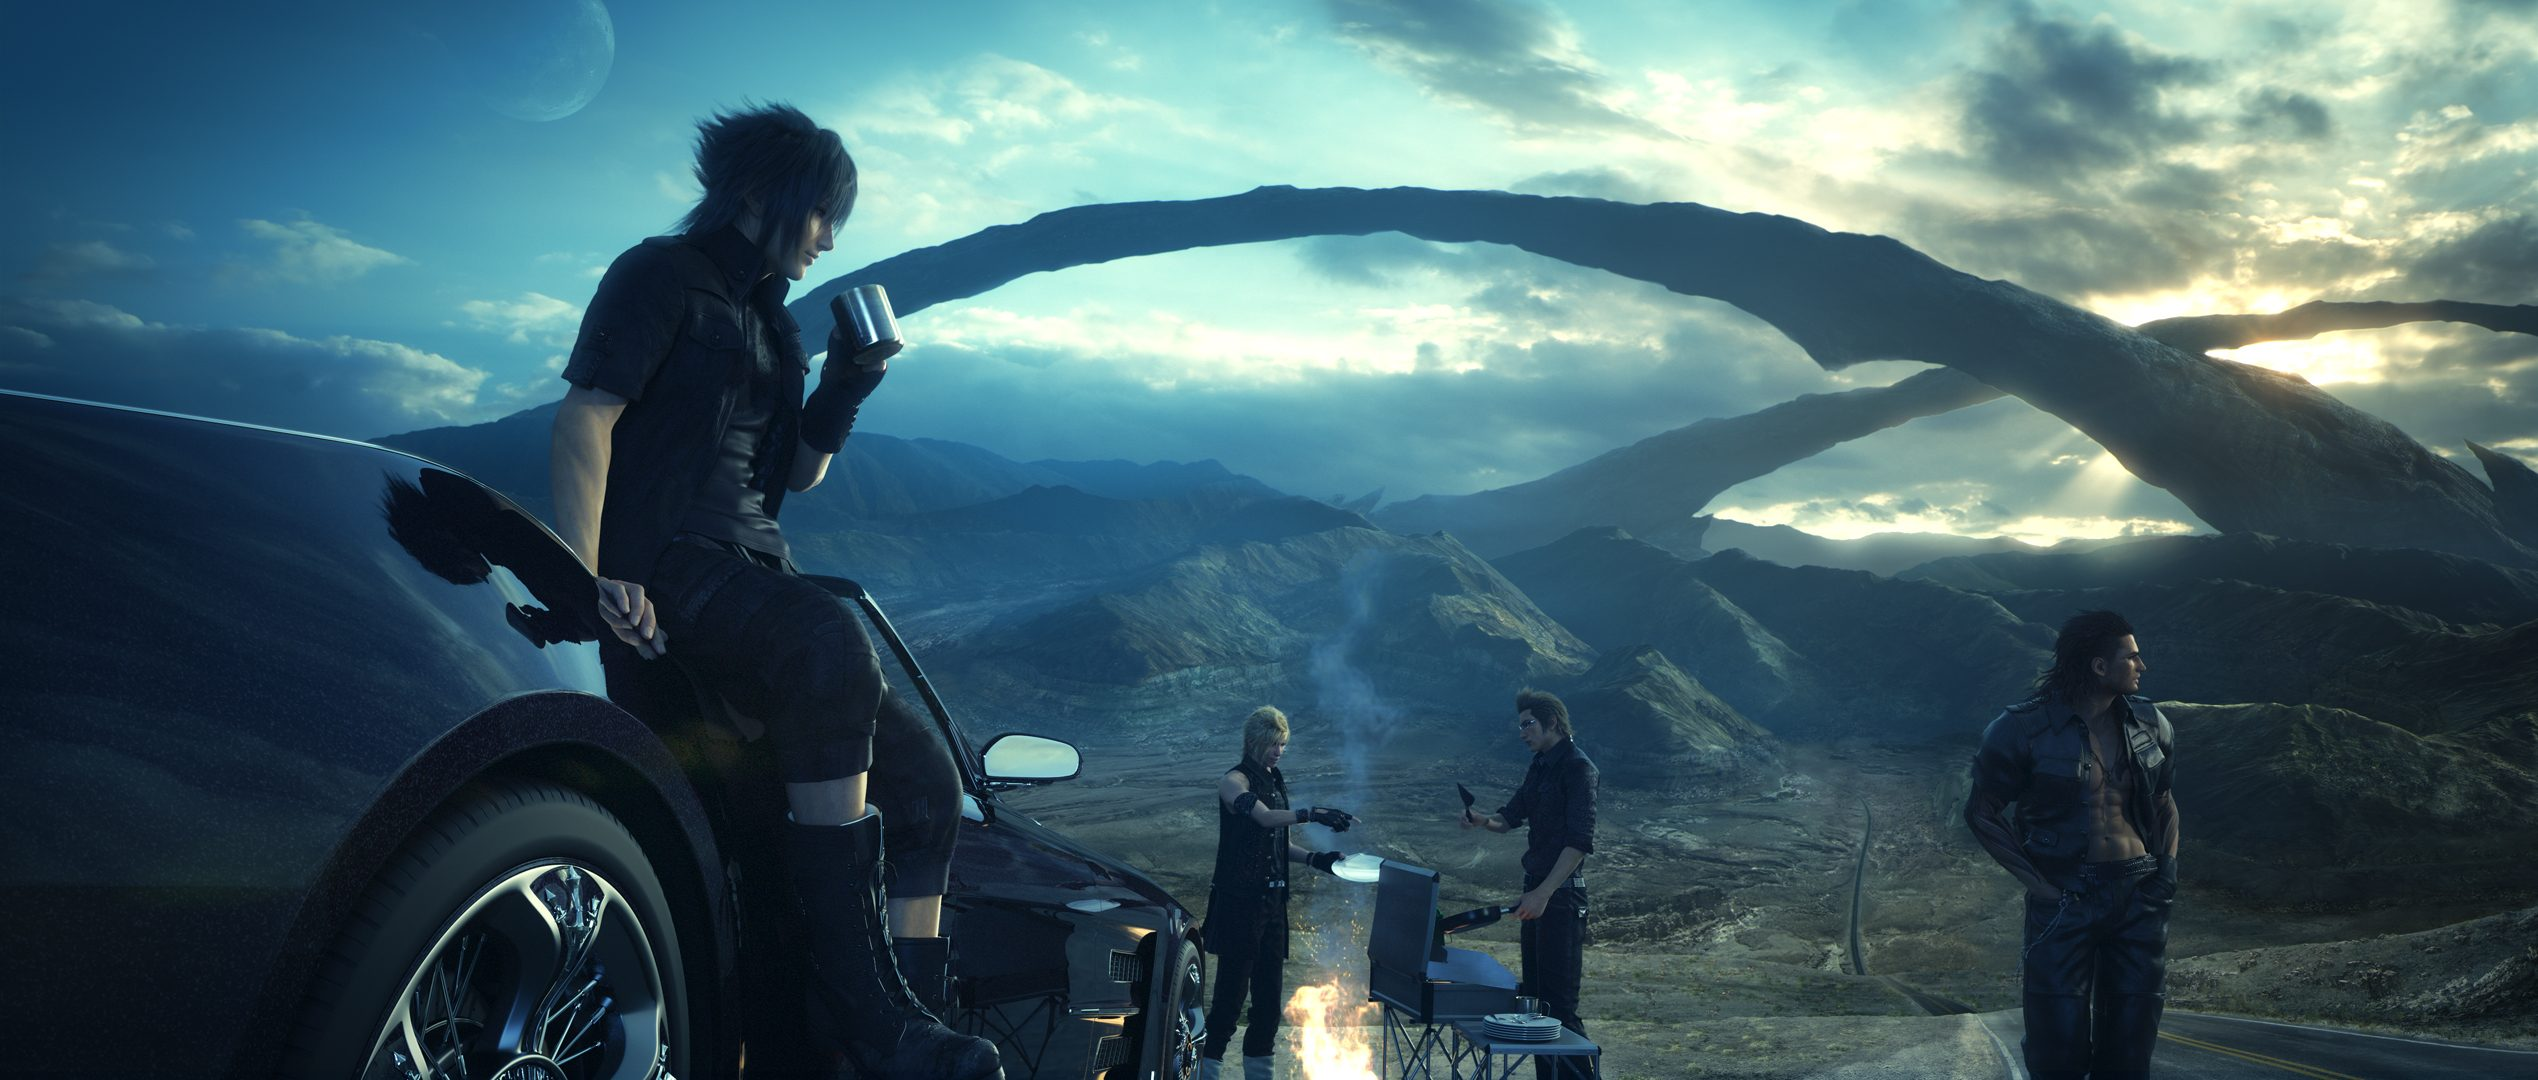 The Latest Developments for Final Fantasy XV